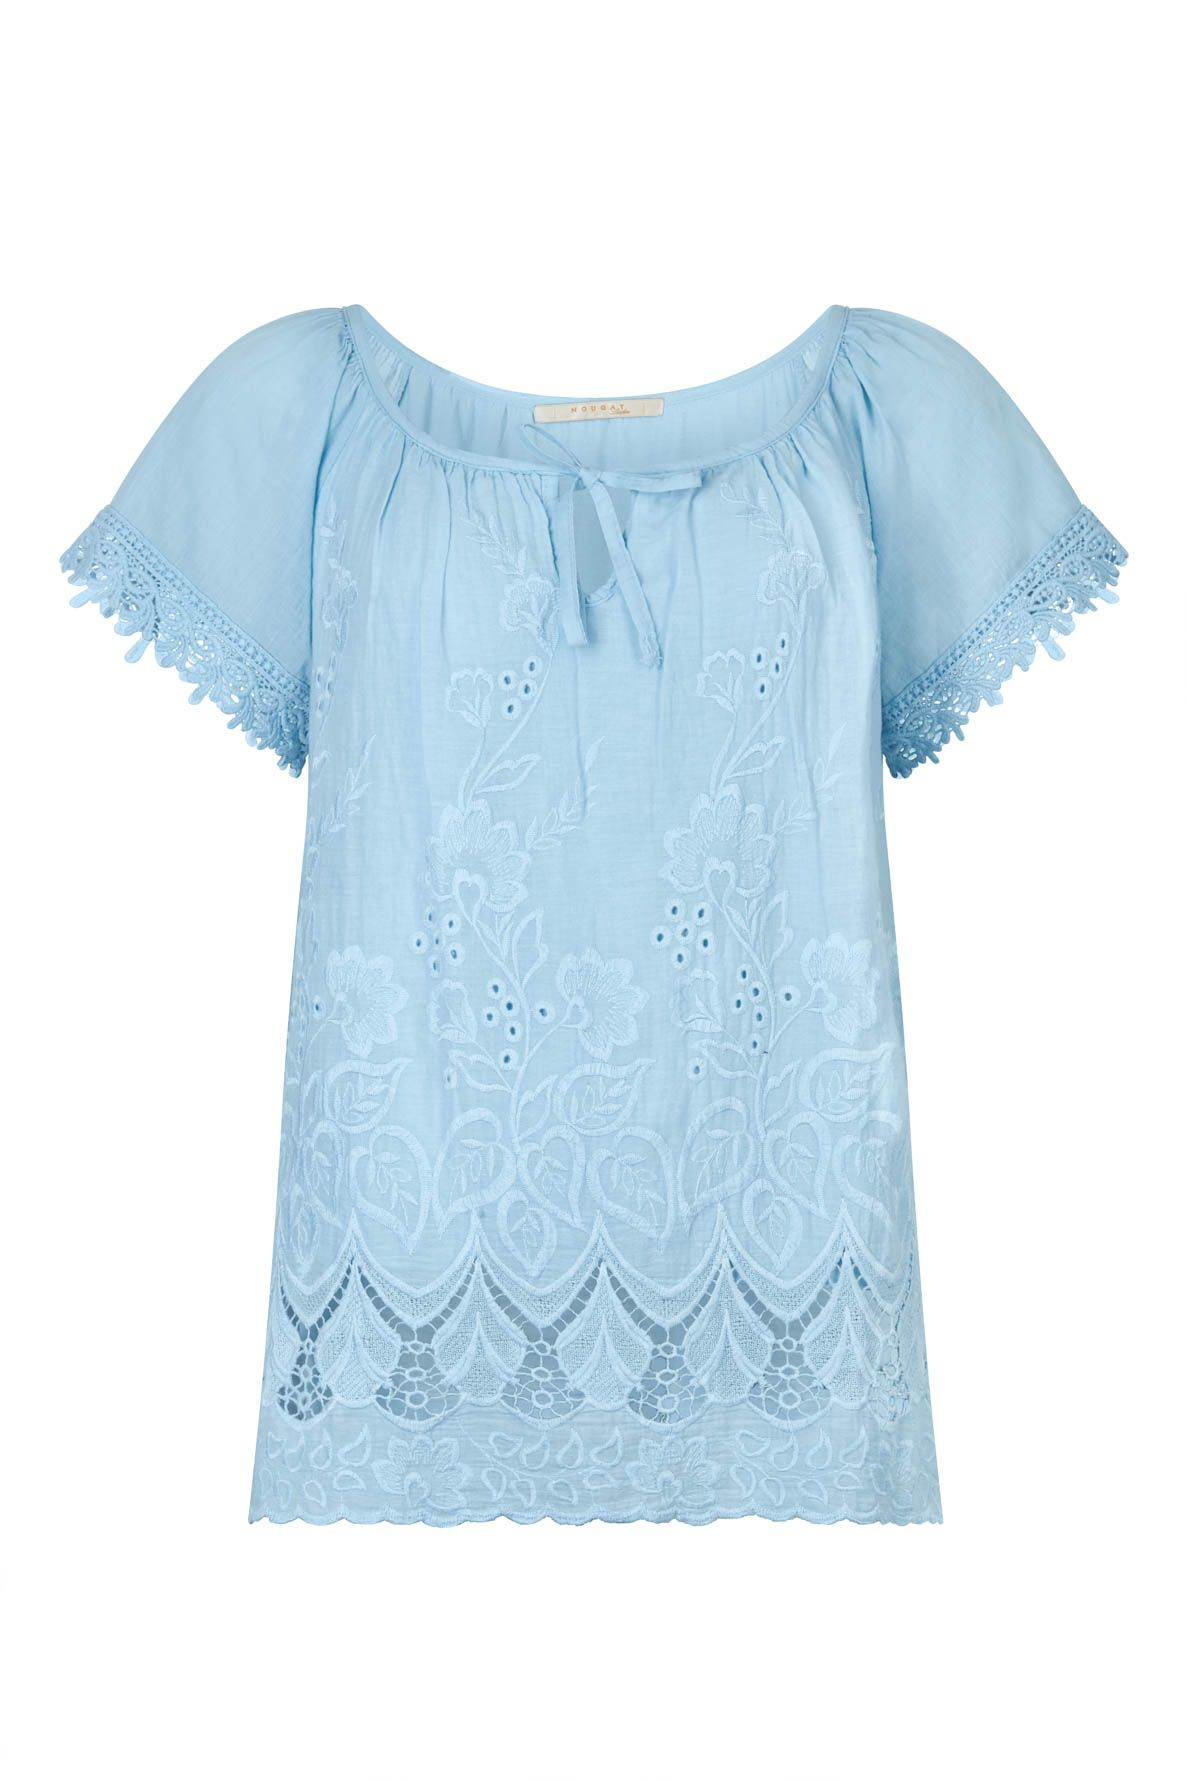 Nougat London Foxglove Embroidered Top, Blue